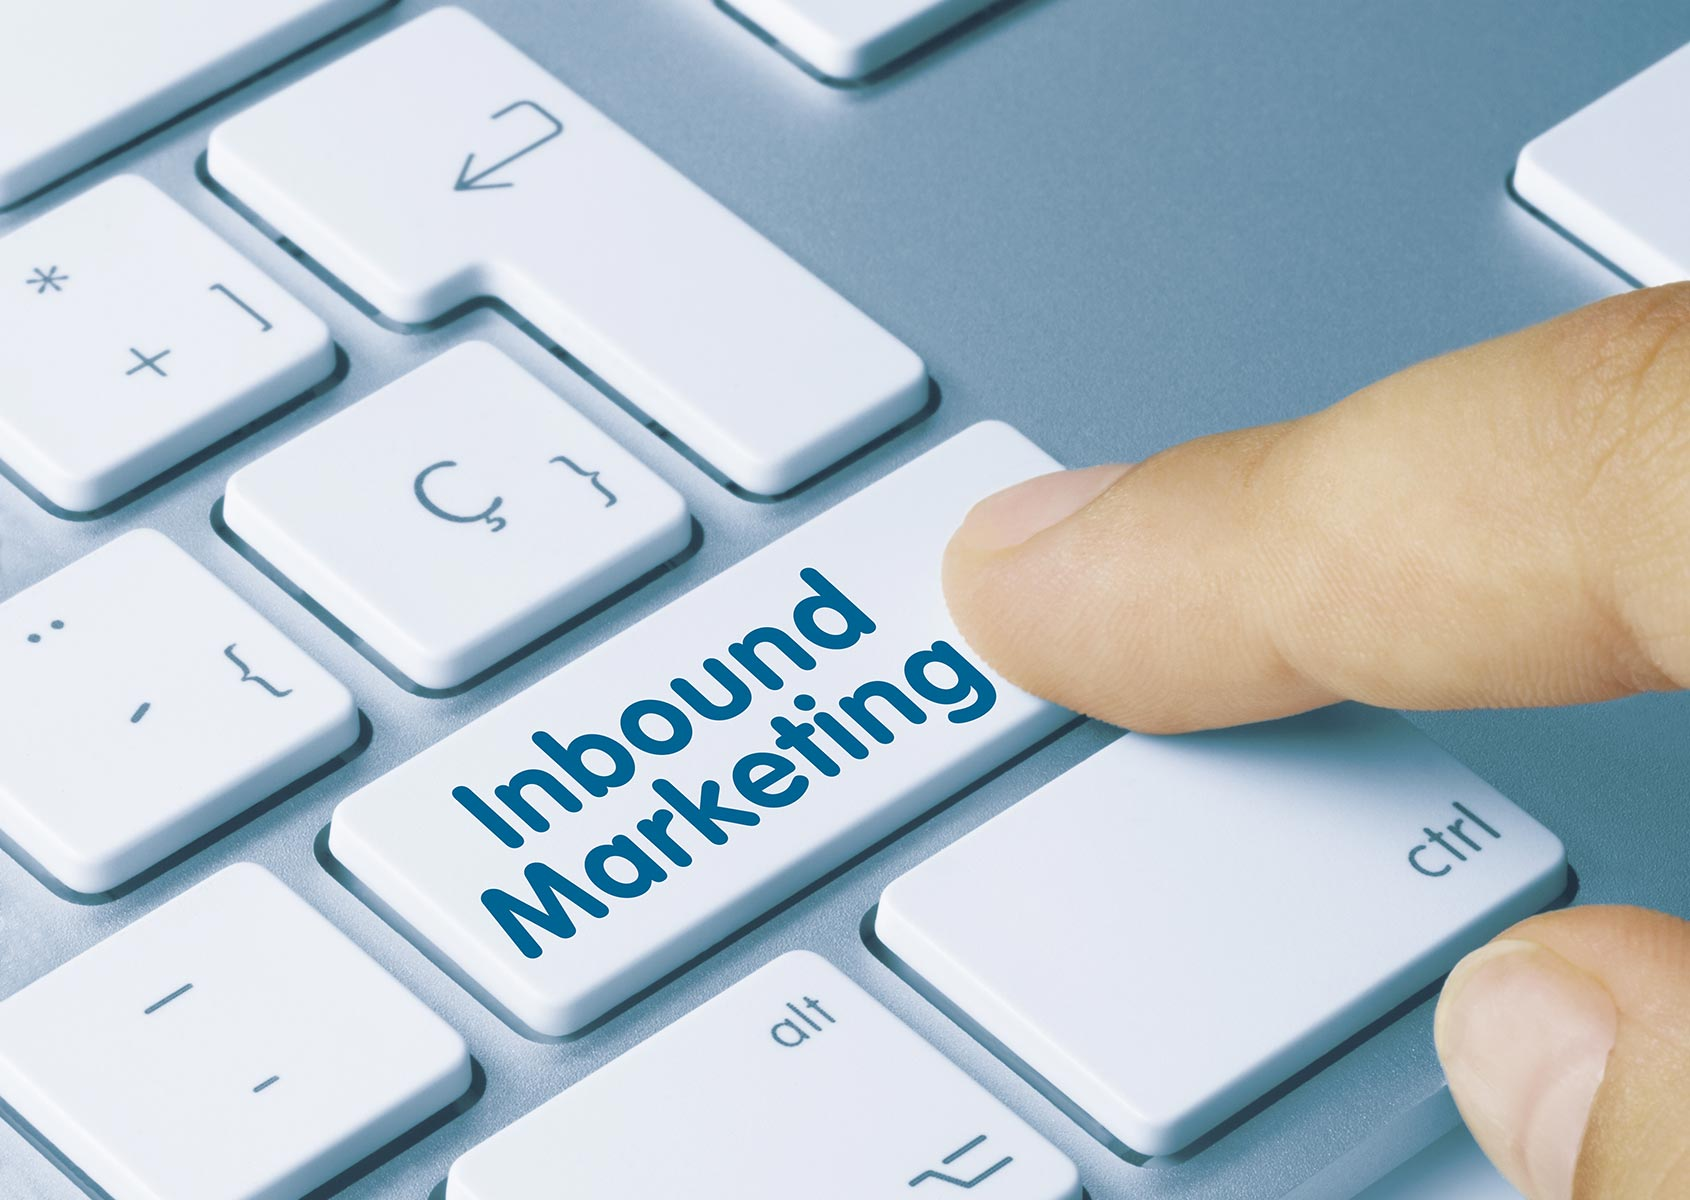 inbound-marketing-advmedialab-01.jpg